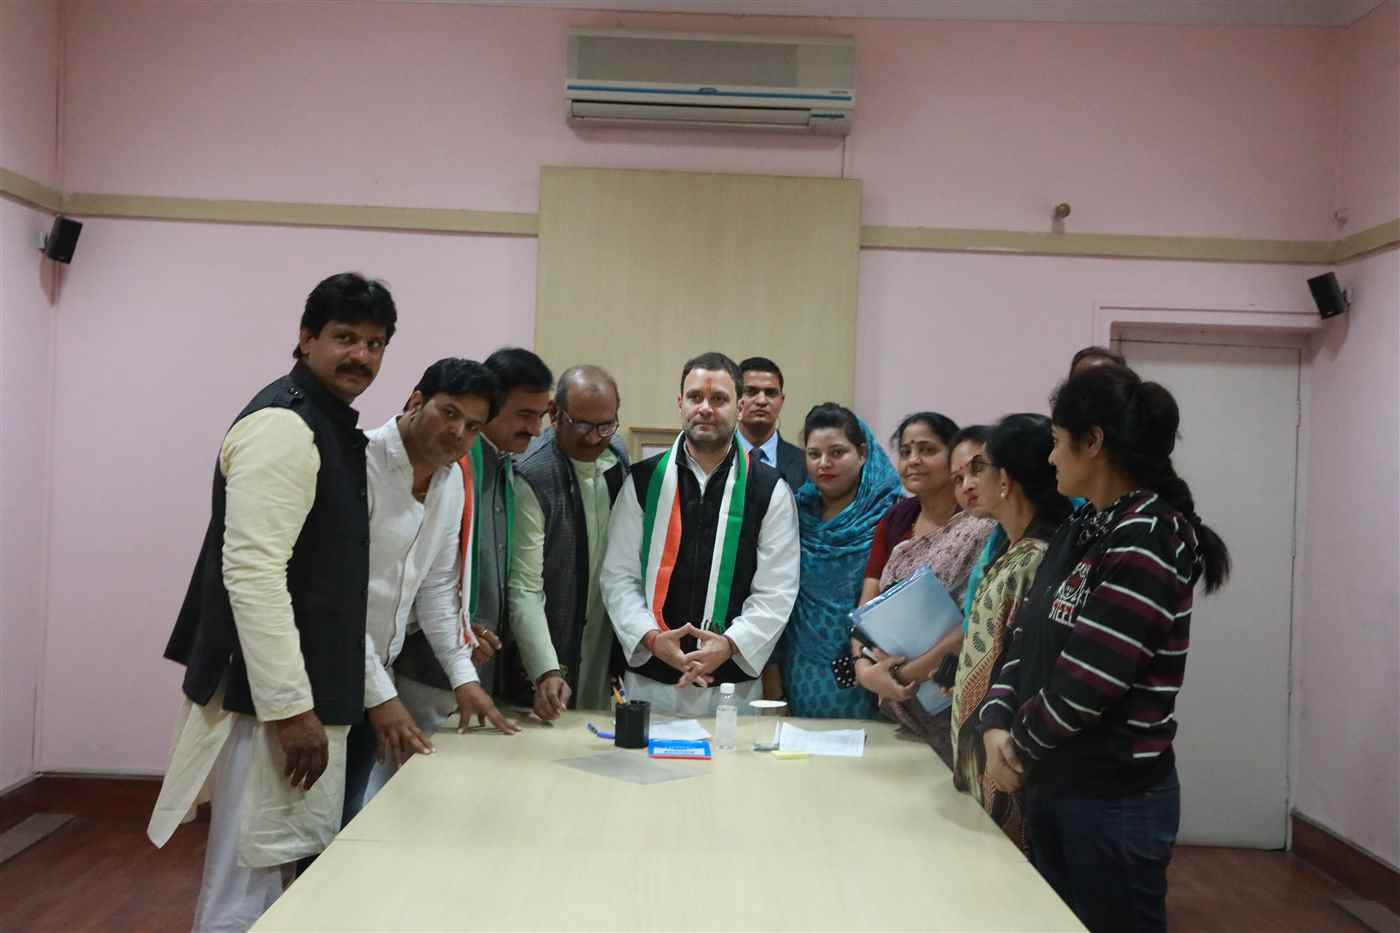 Rahul Gandhi files nomination for INC President 04 - 12 - 2017  3S4A1415